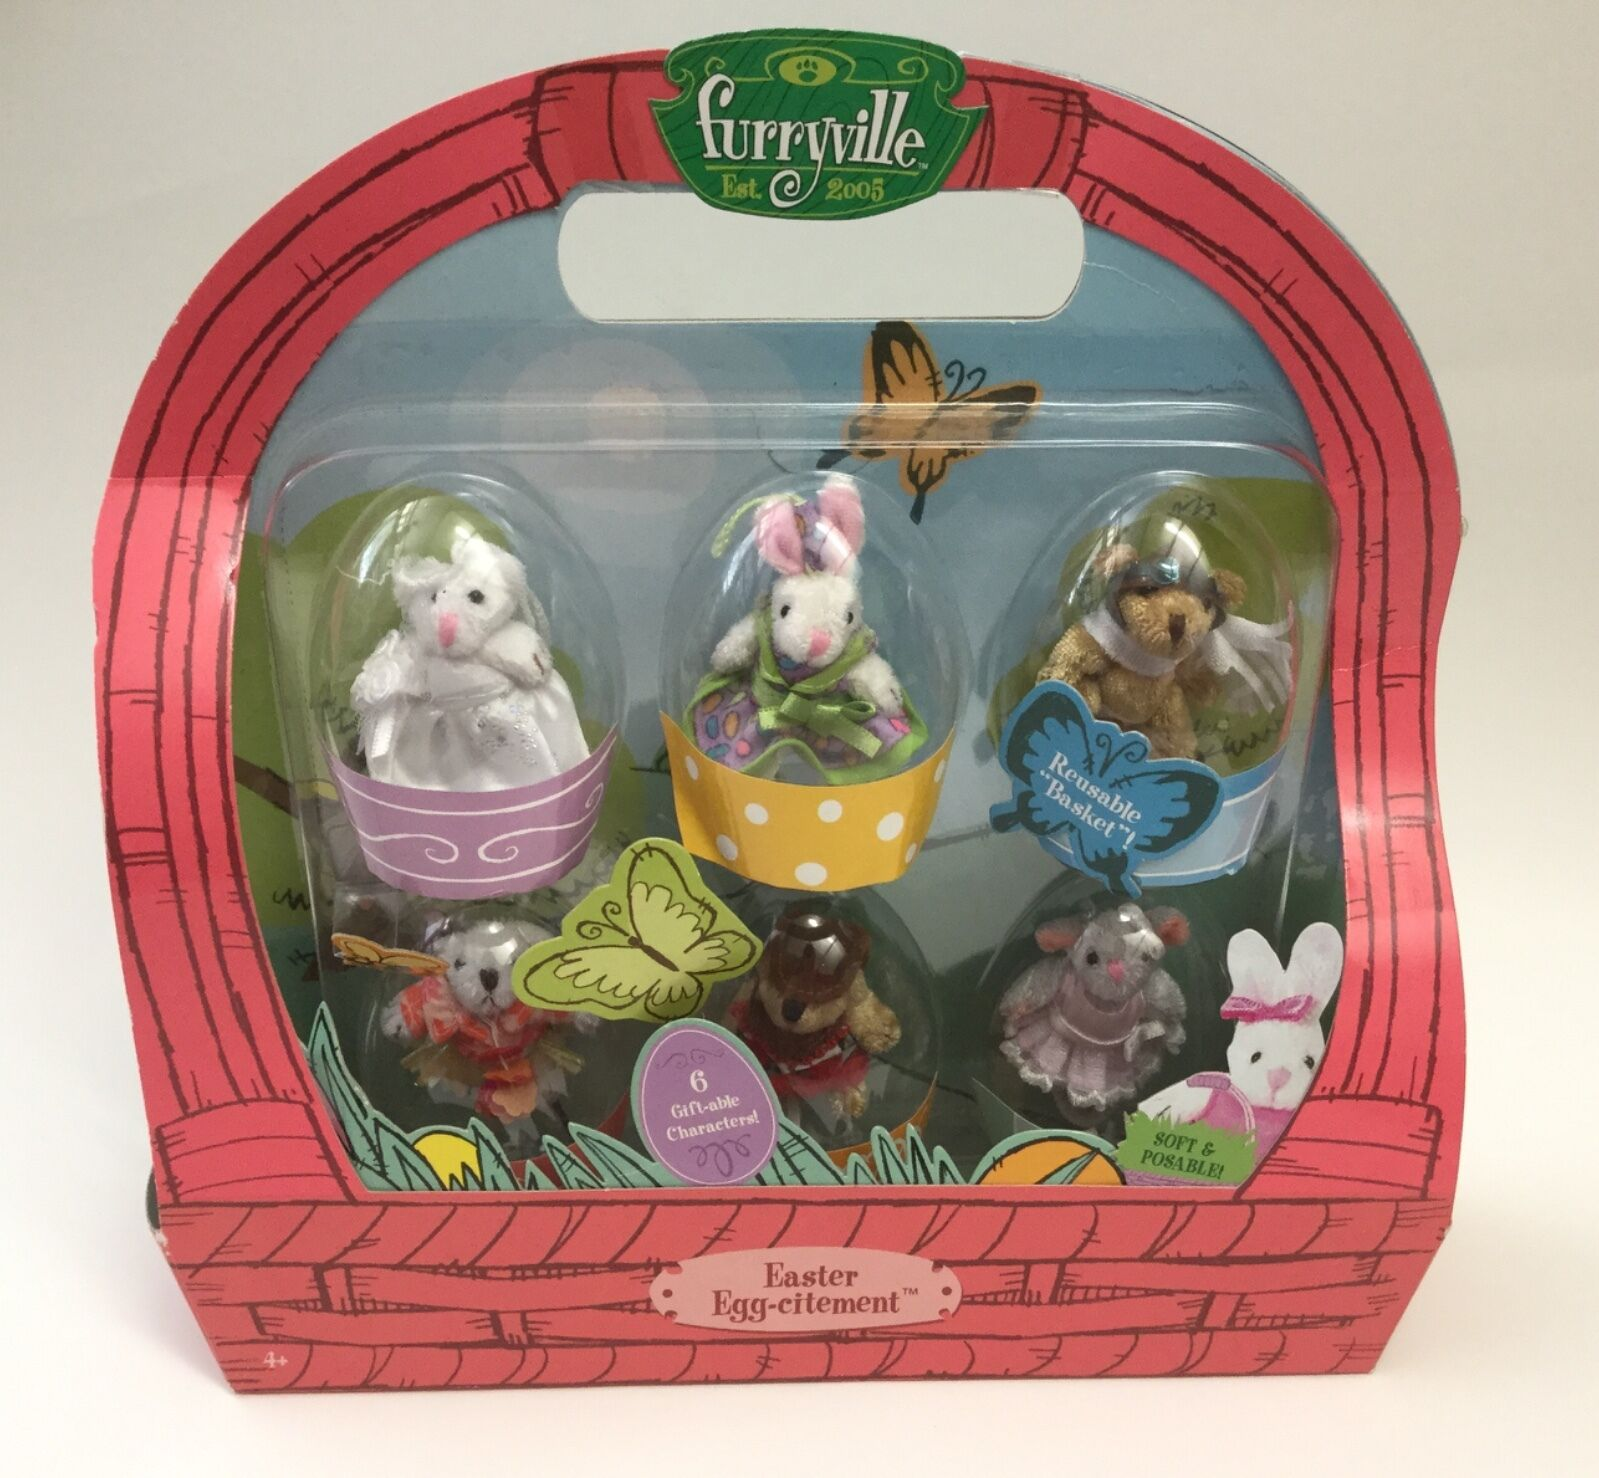 NEW Furryville Est. 2005 Easter Egg-citement 6 soft posable gift-able characters